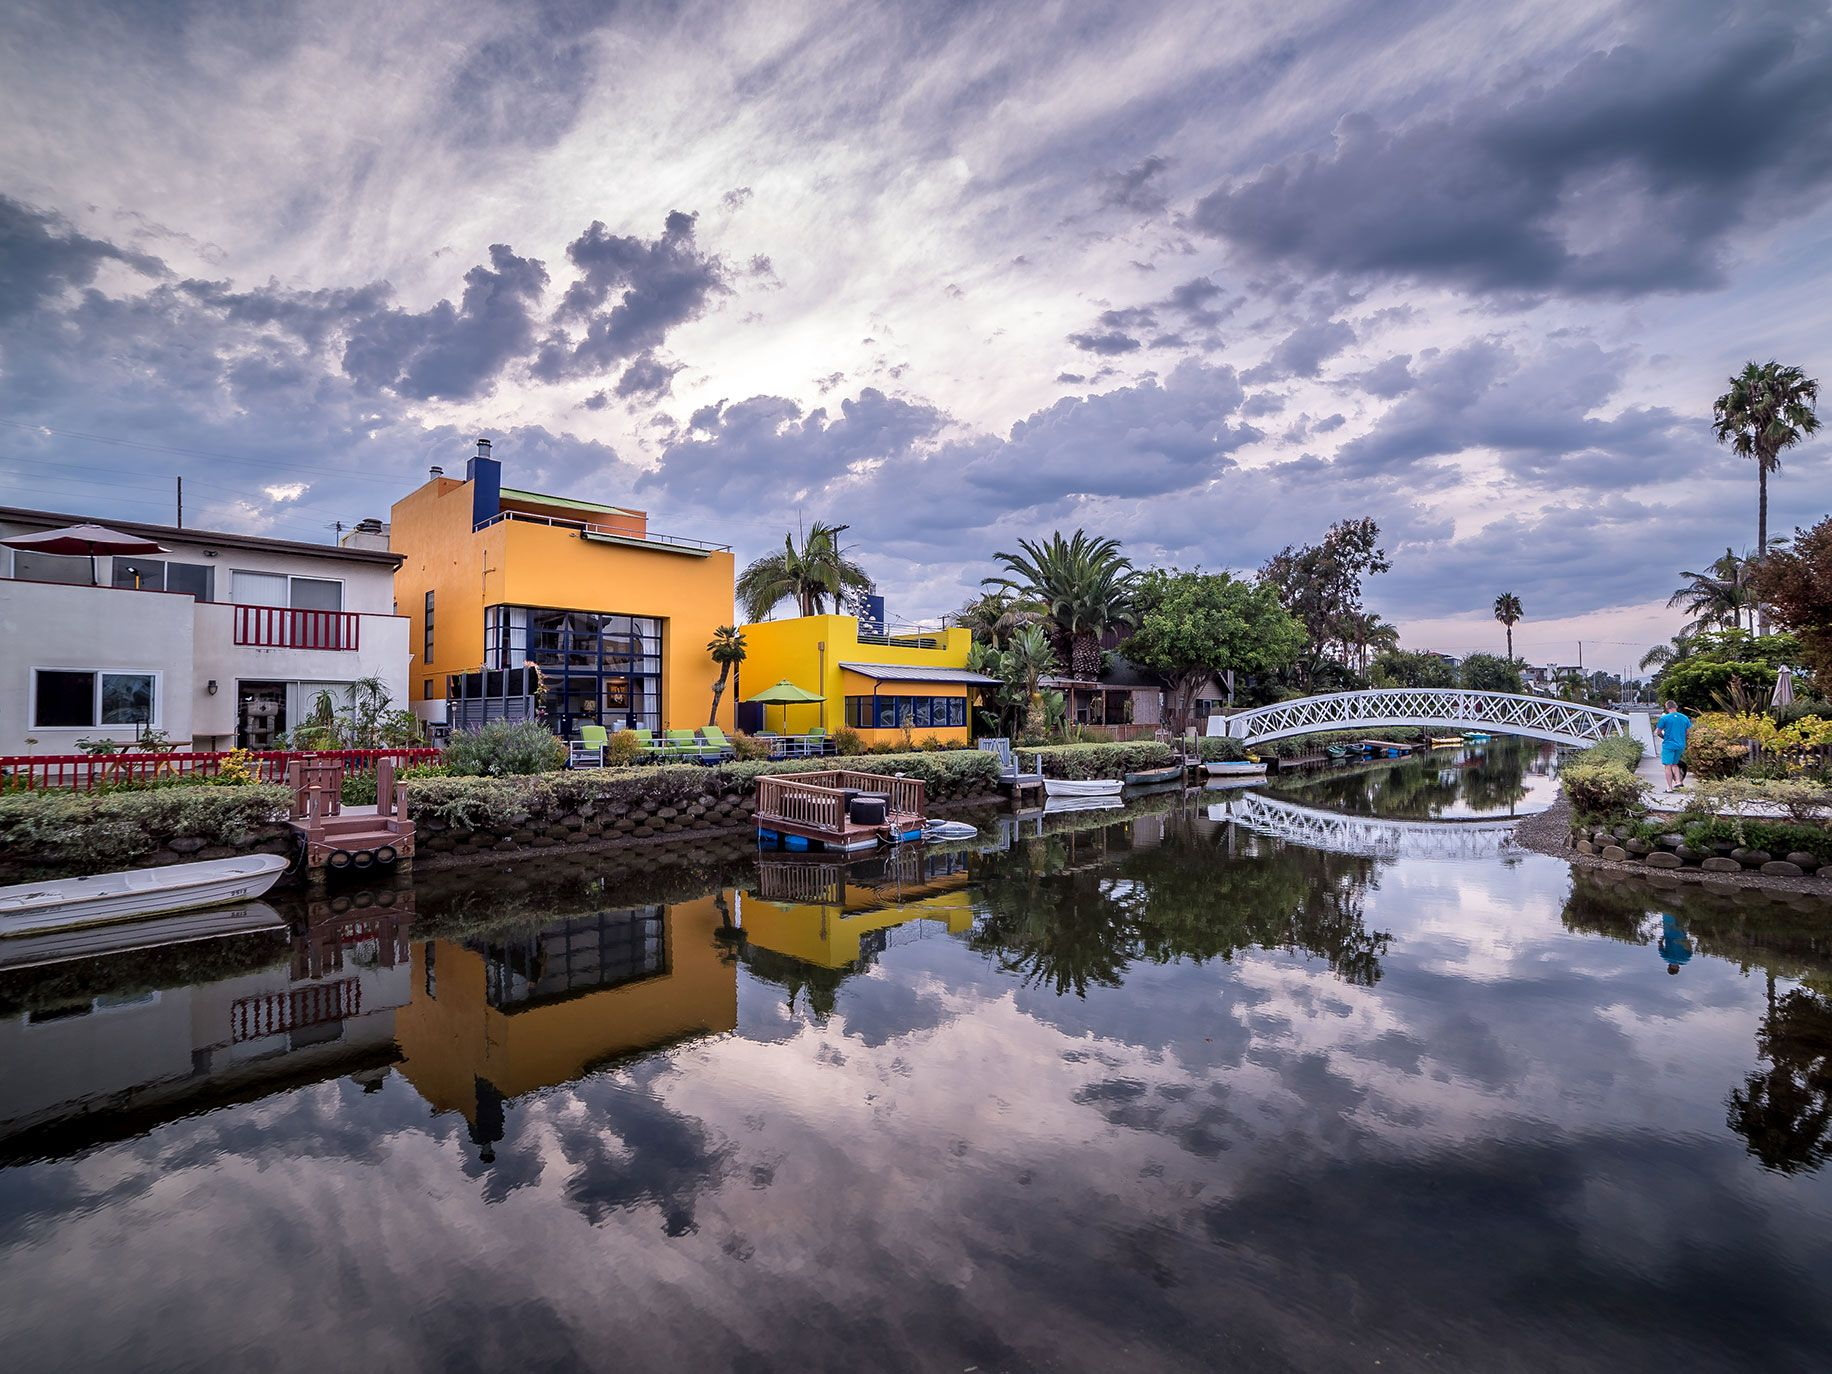 Ramelli recommends that If you get a chance to visit Venice Canals in Los Angeles, go there on a cloudy day to photograph the amazing reflection you get from the still water.